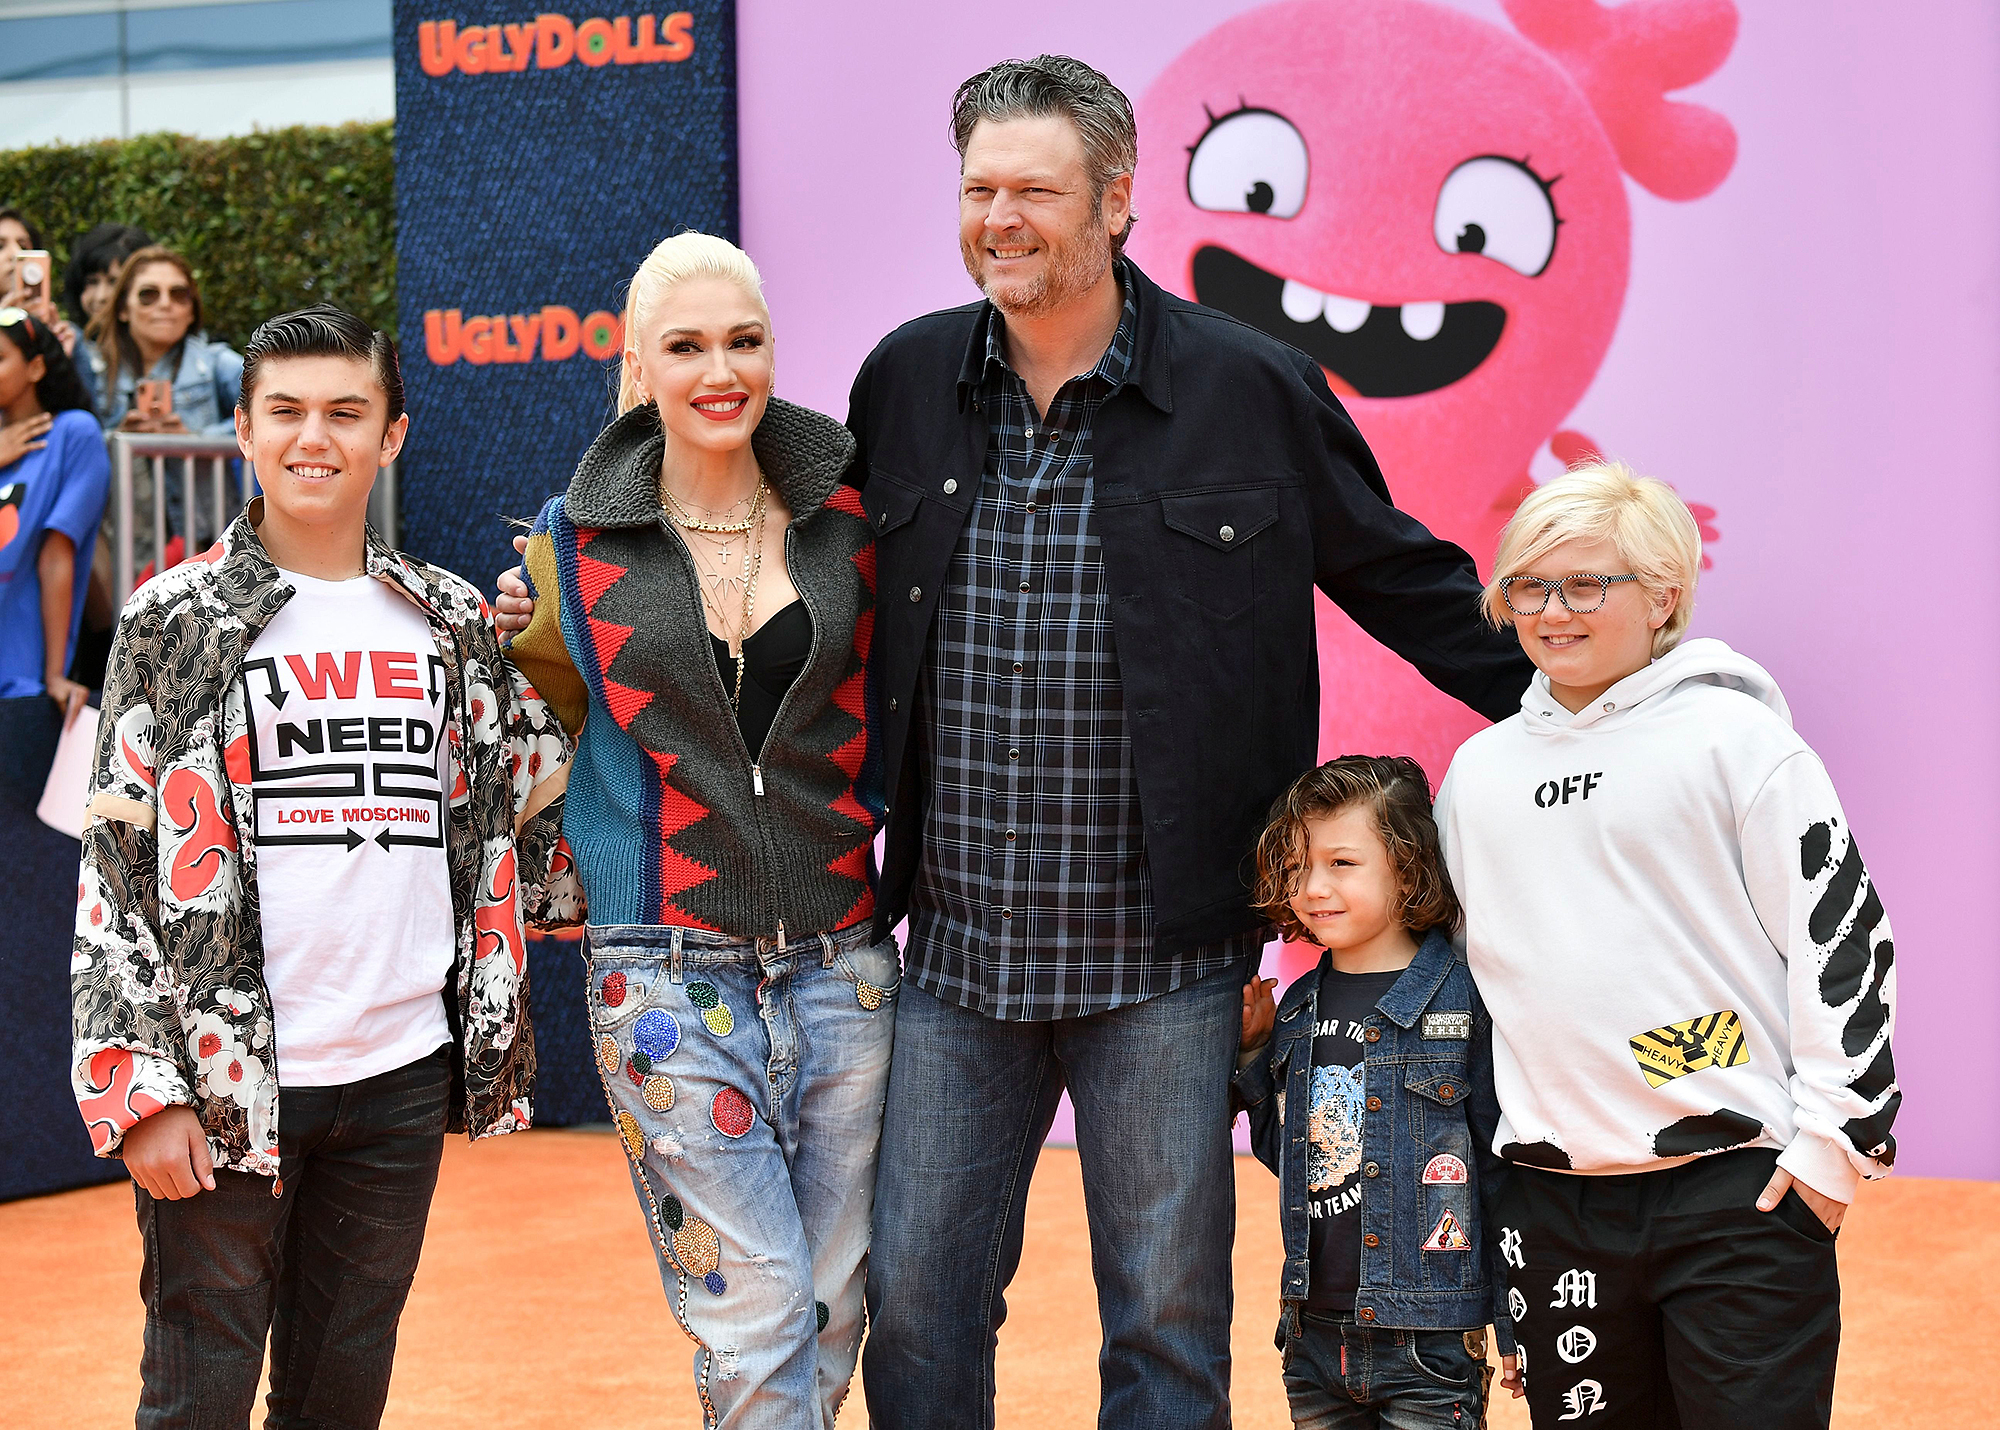 Gwen Stefani and Gavin Rossdale Have Found a 'Happy Medium' Coparenting, Wustoo